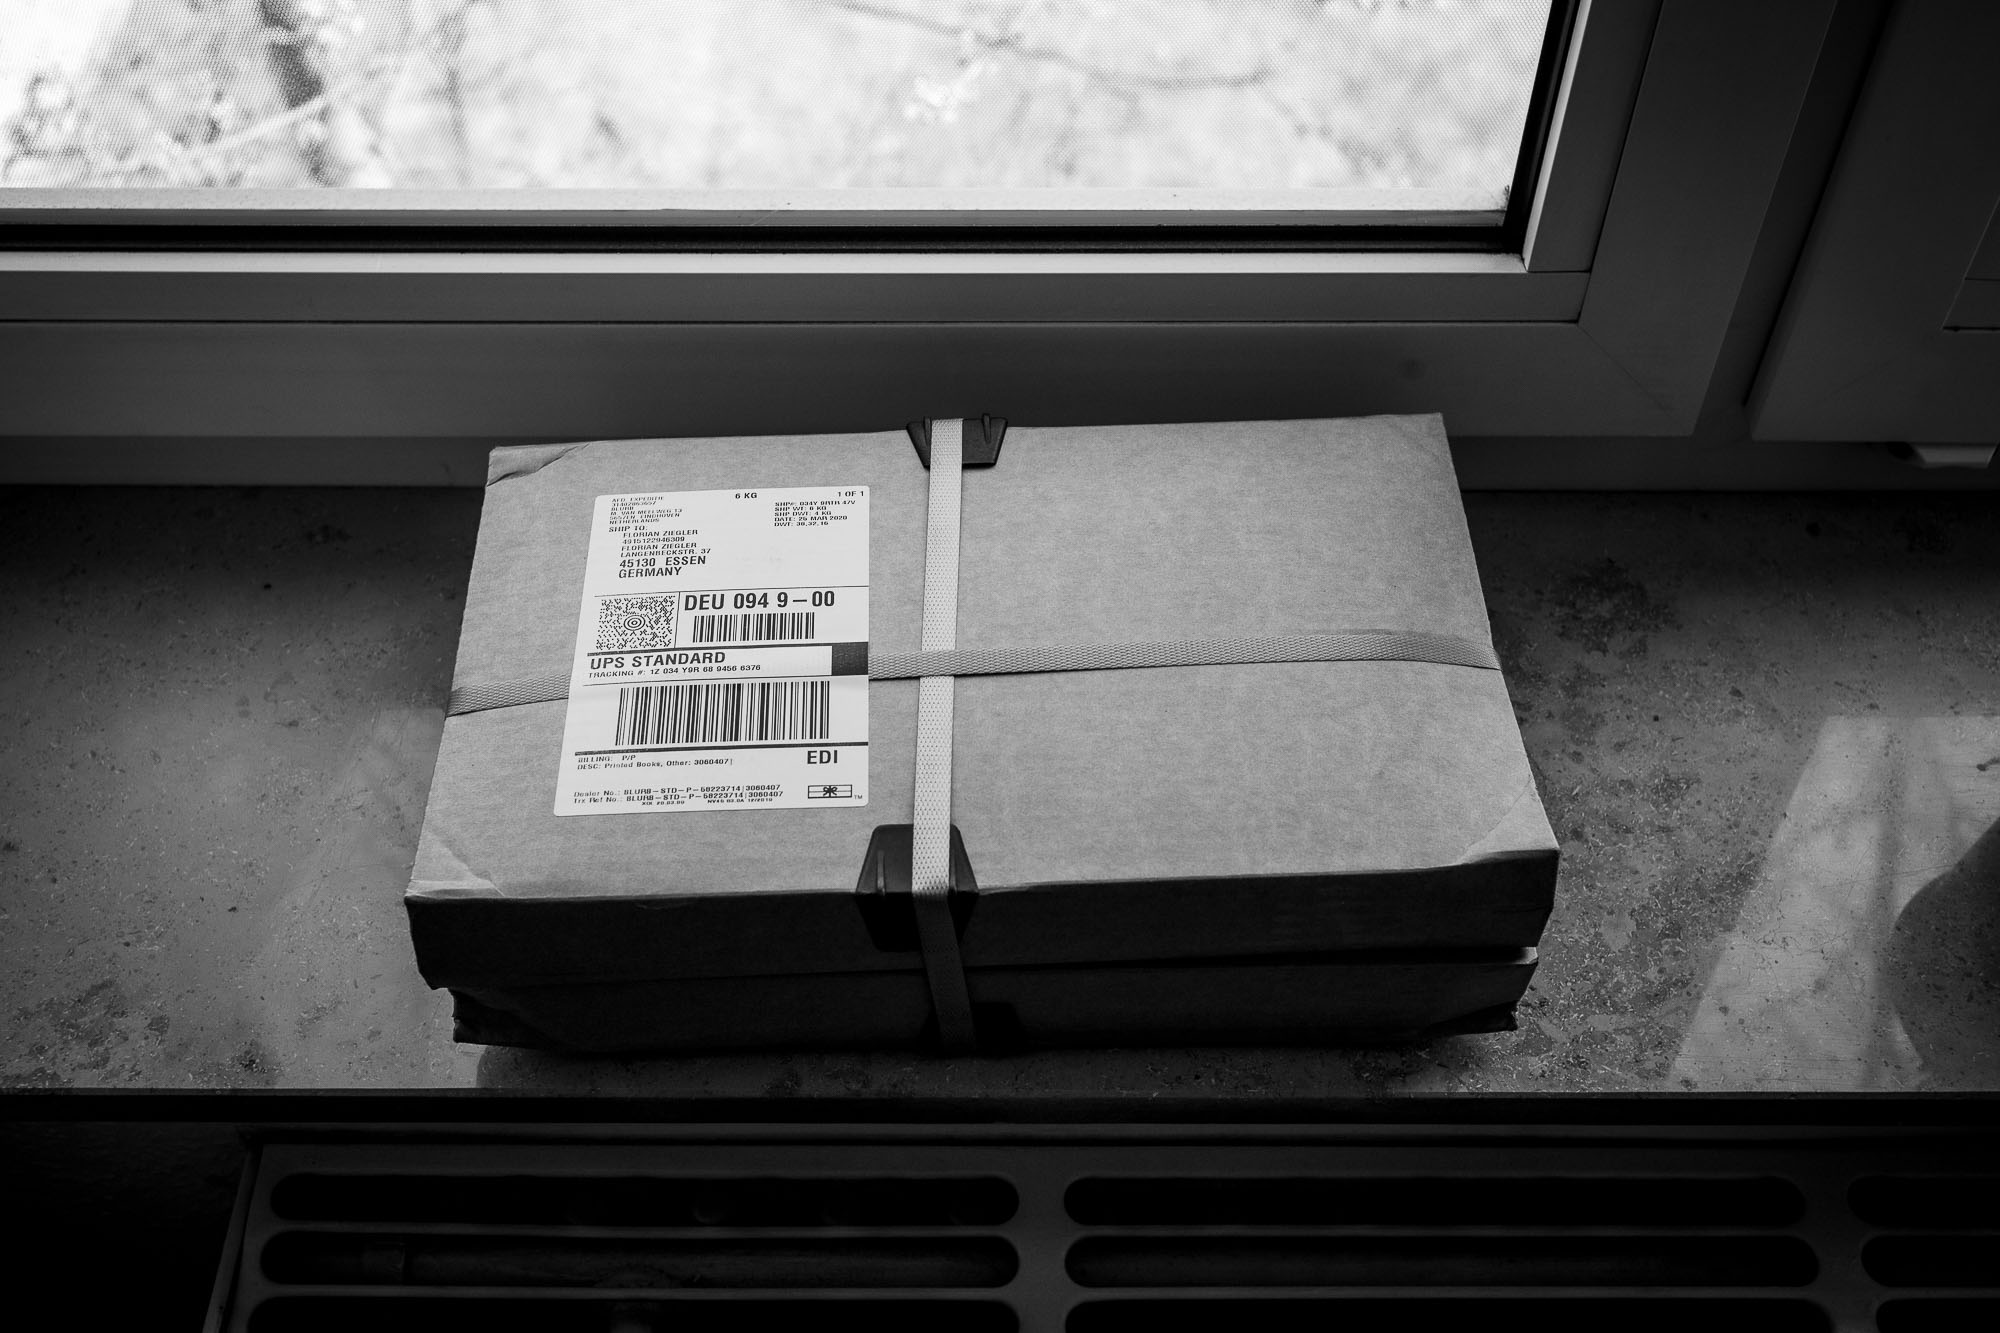 A package, containing copies of my first photo zine